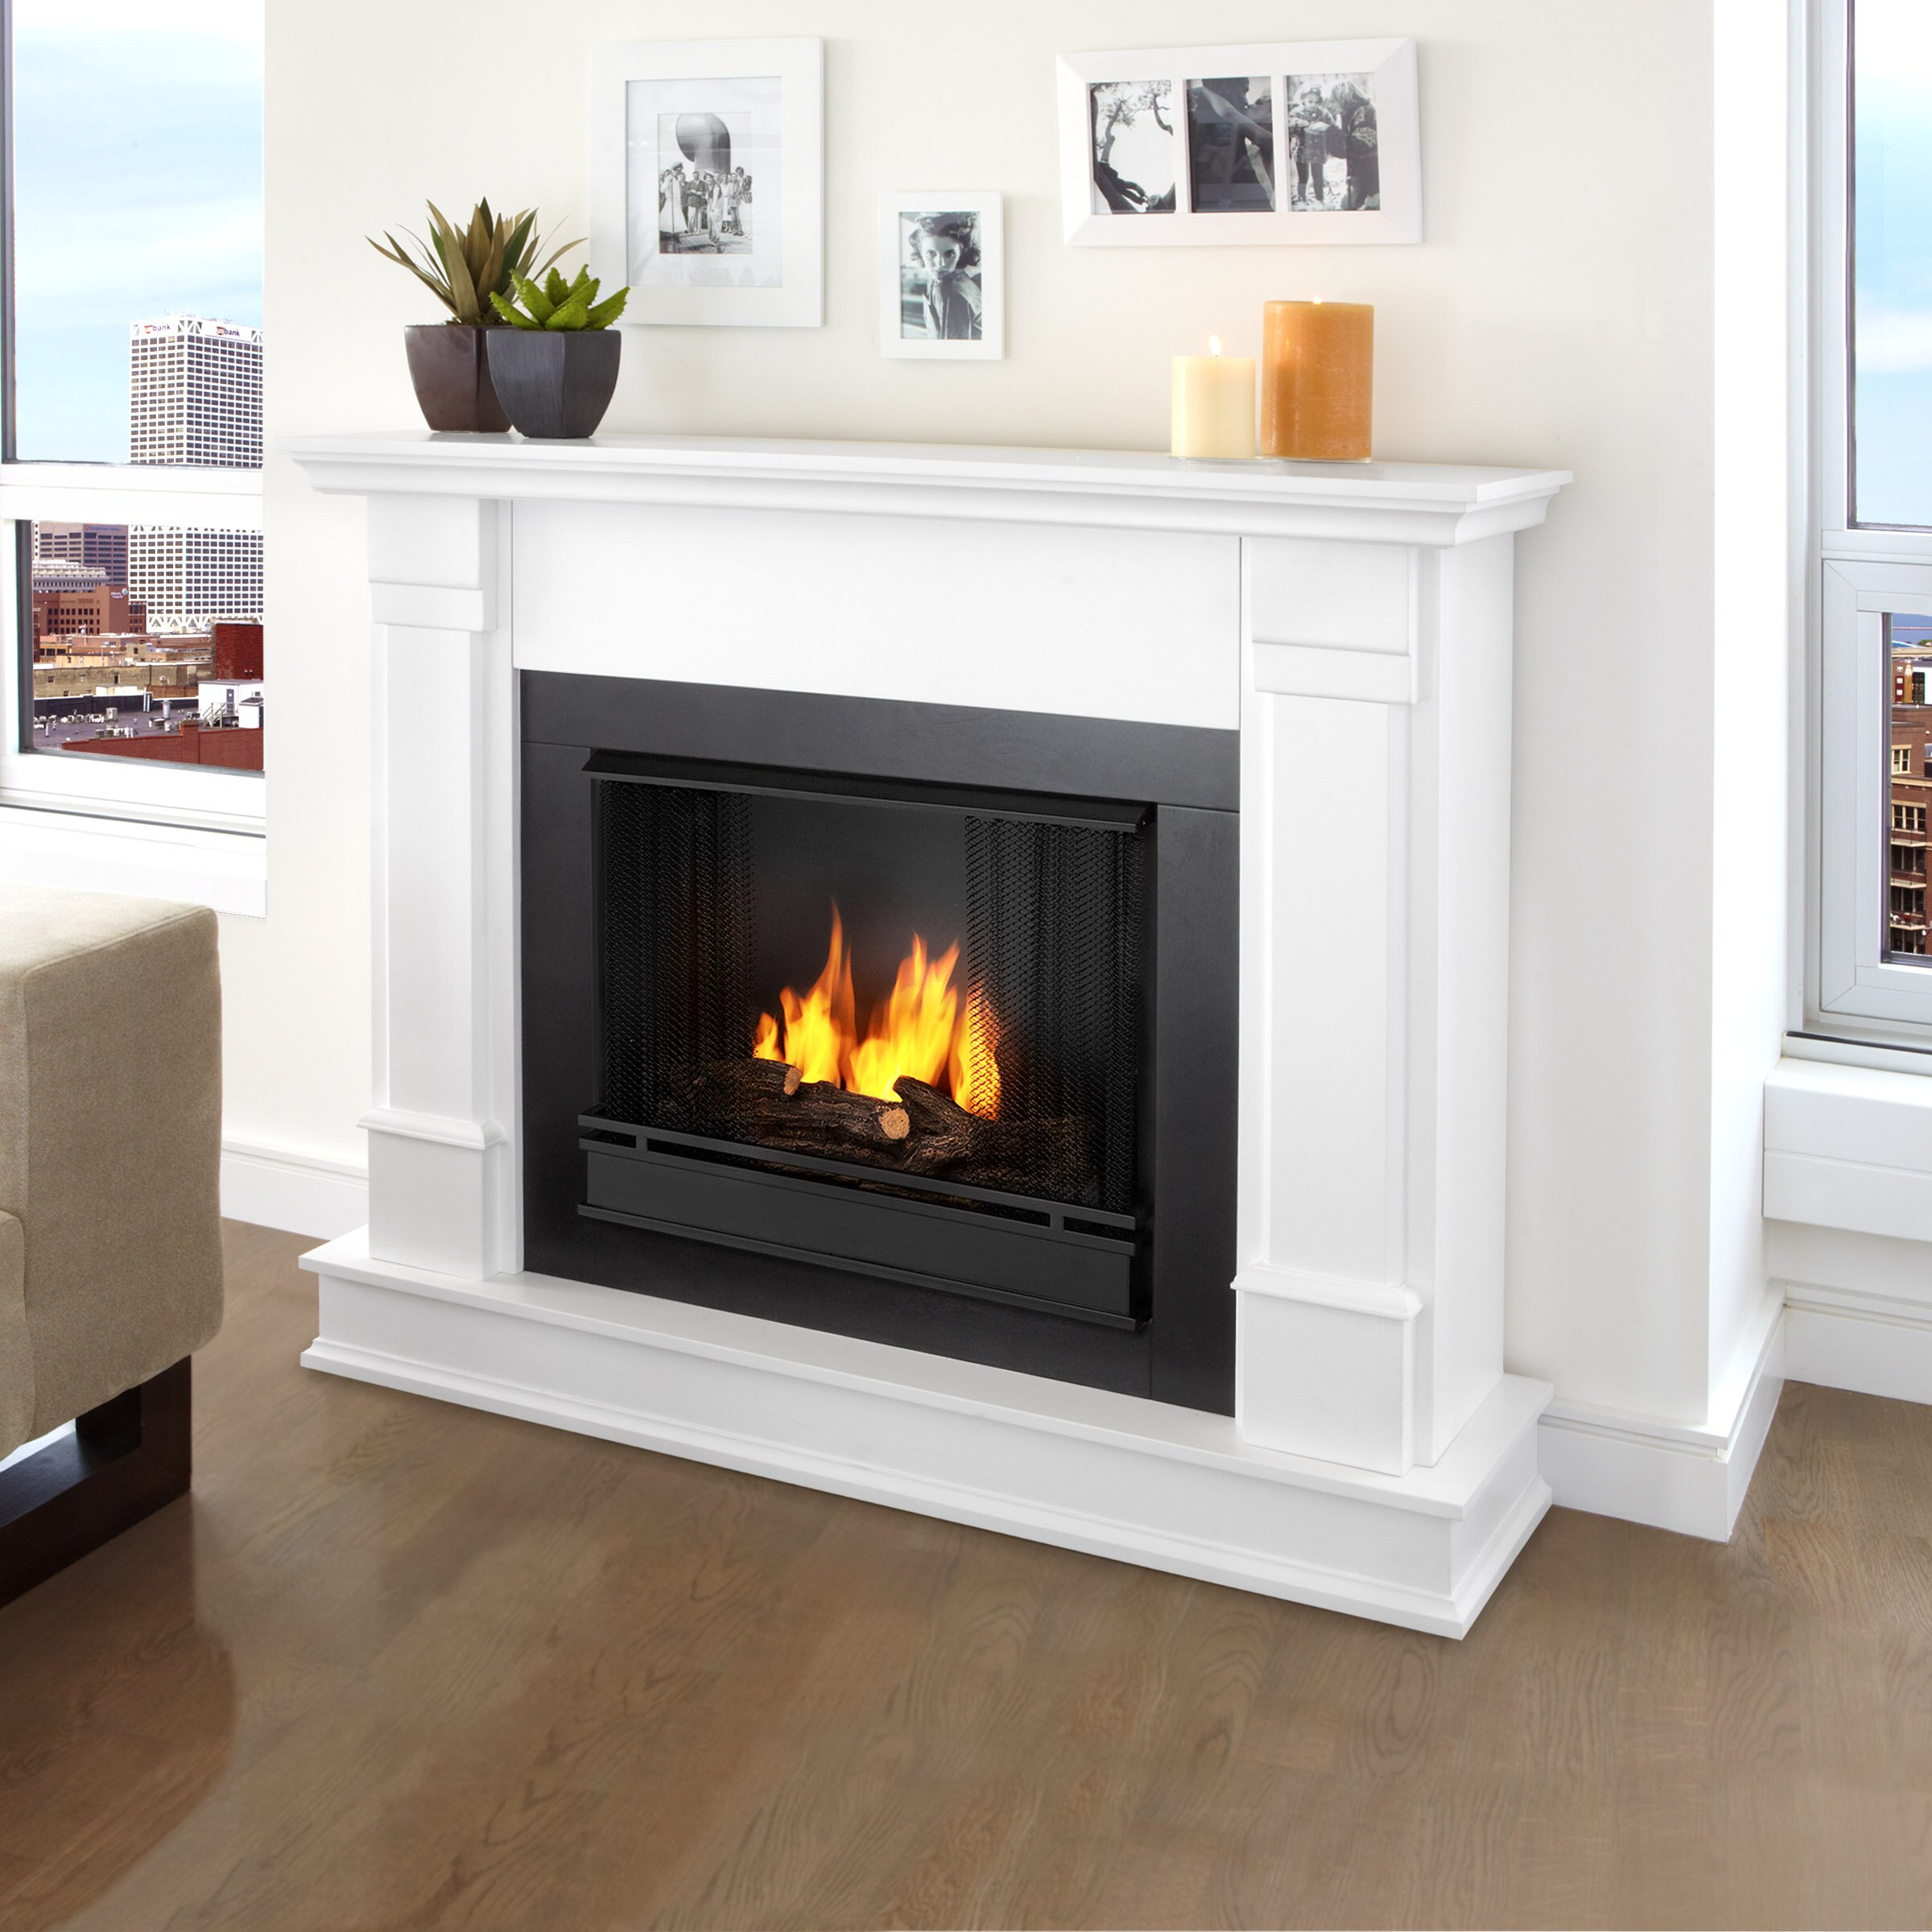 Stunning Wall Fireplaces Gel Fuel Images 3D house designs